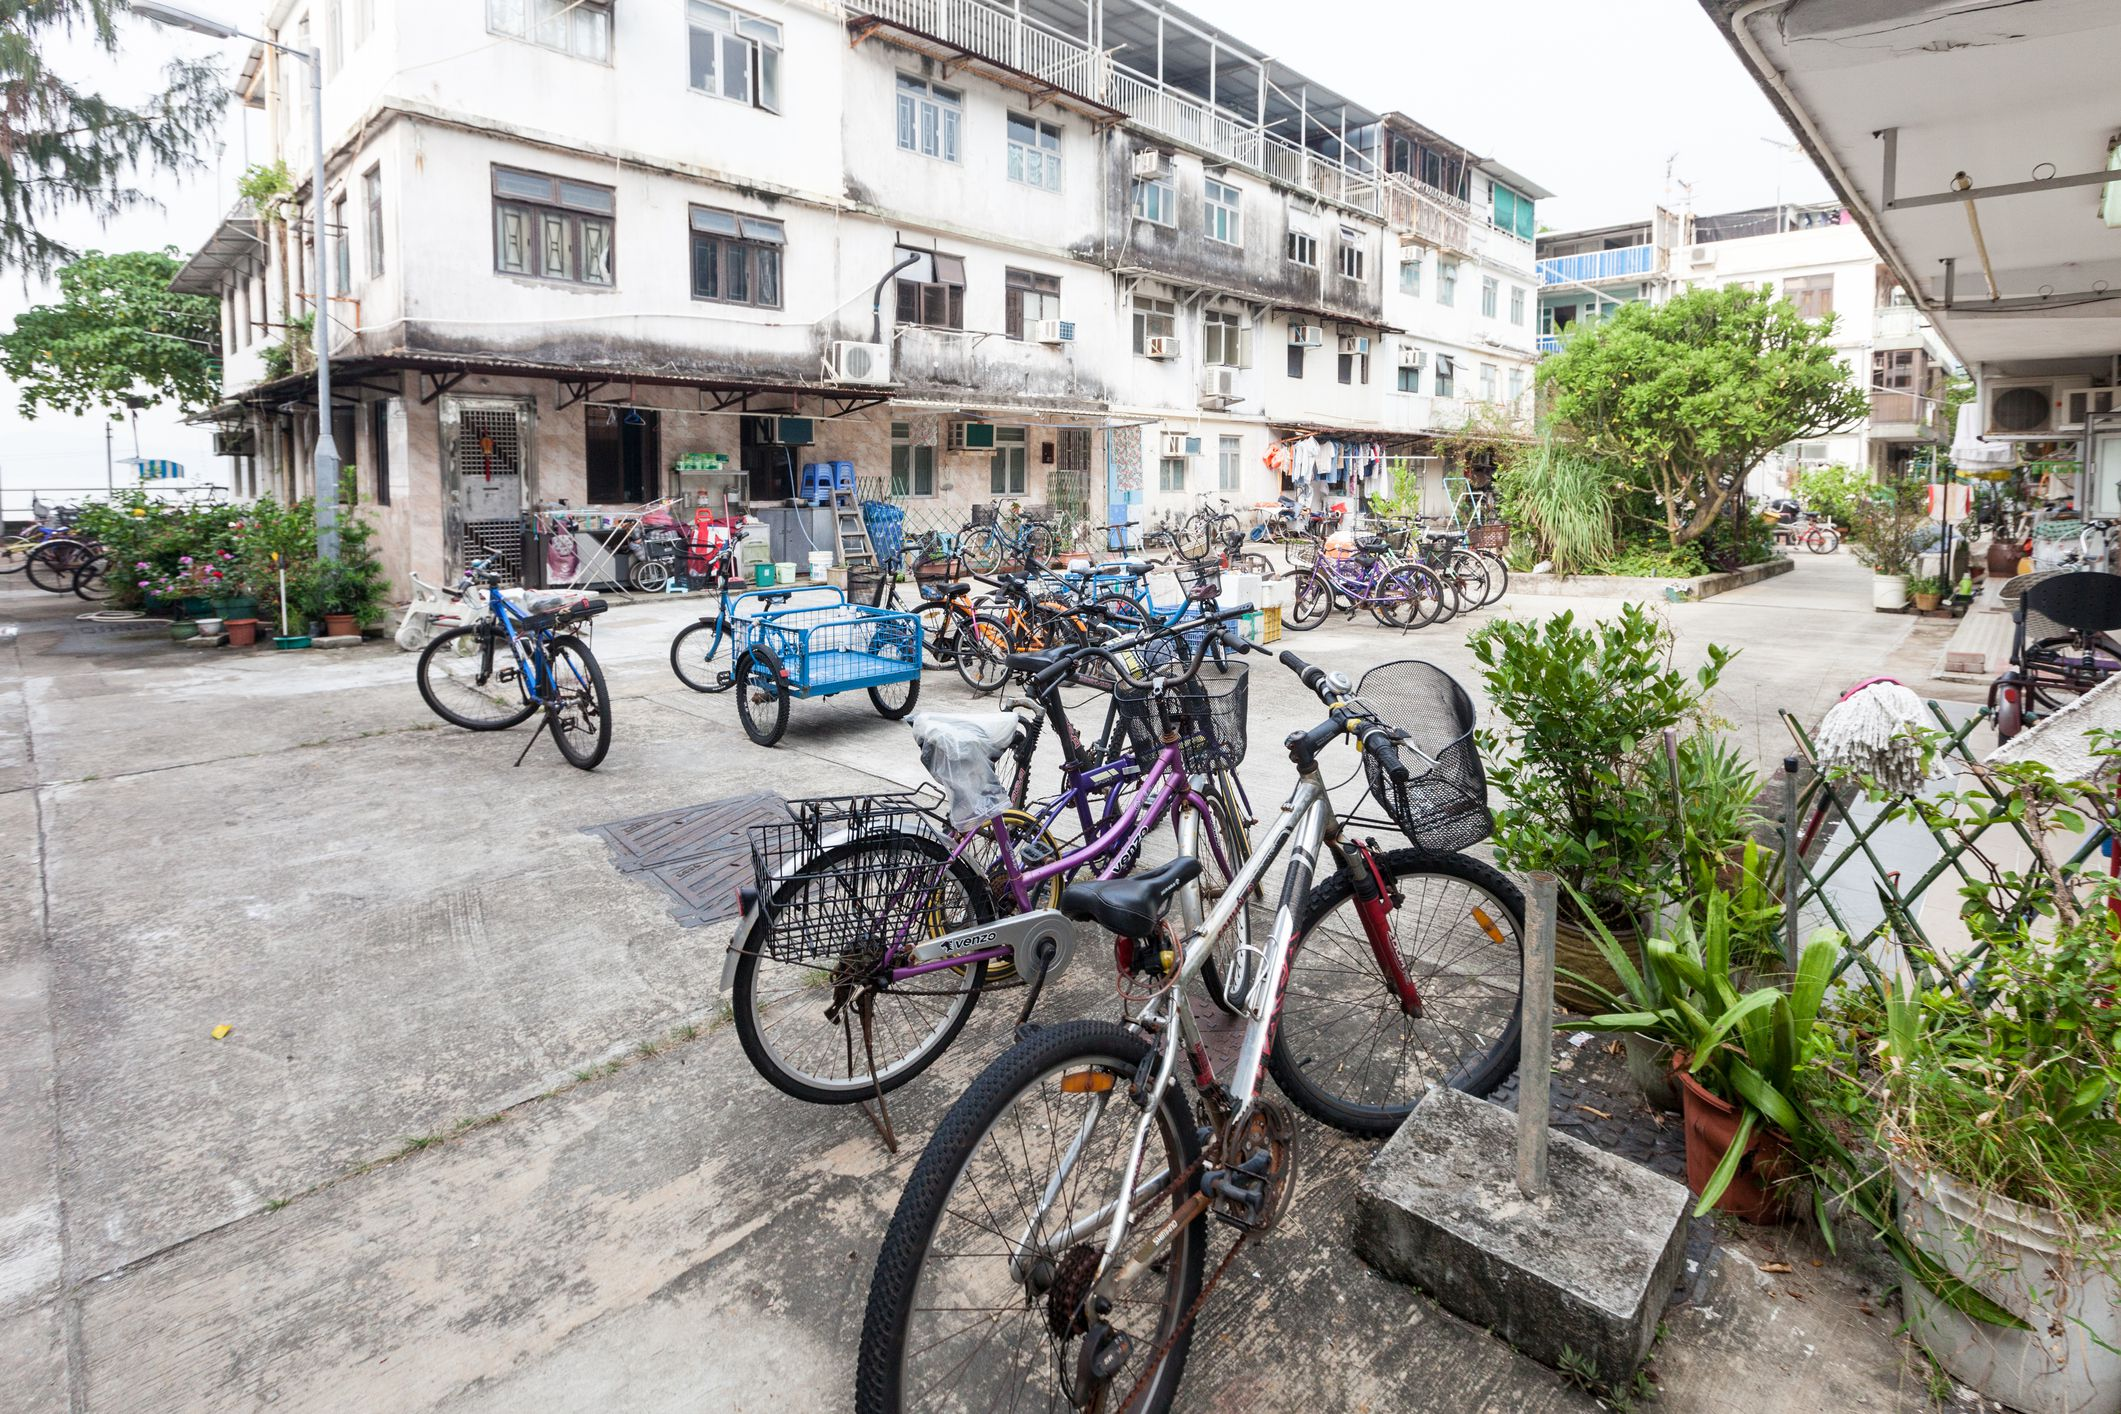 Bicycles In A Residential Area On Peng Chau Island, Hong Kong